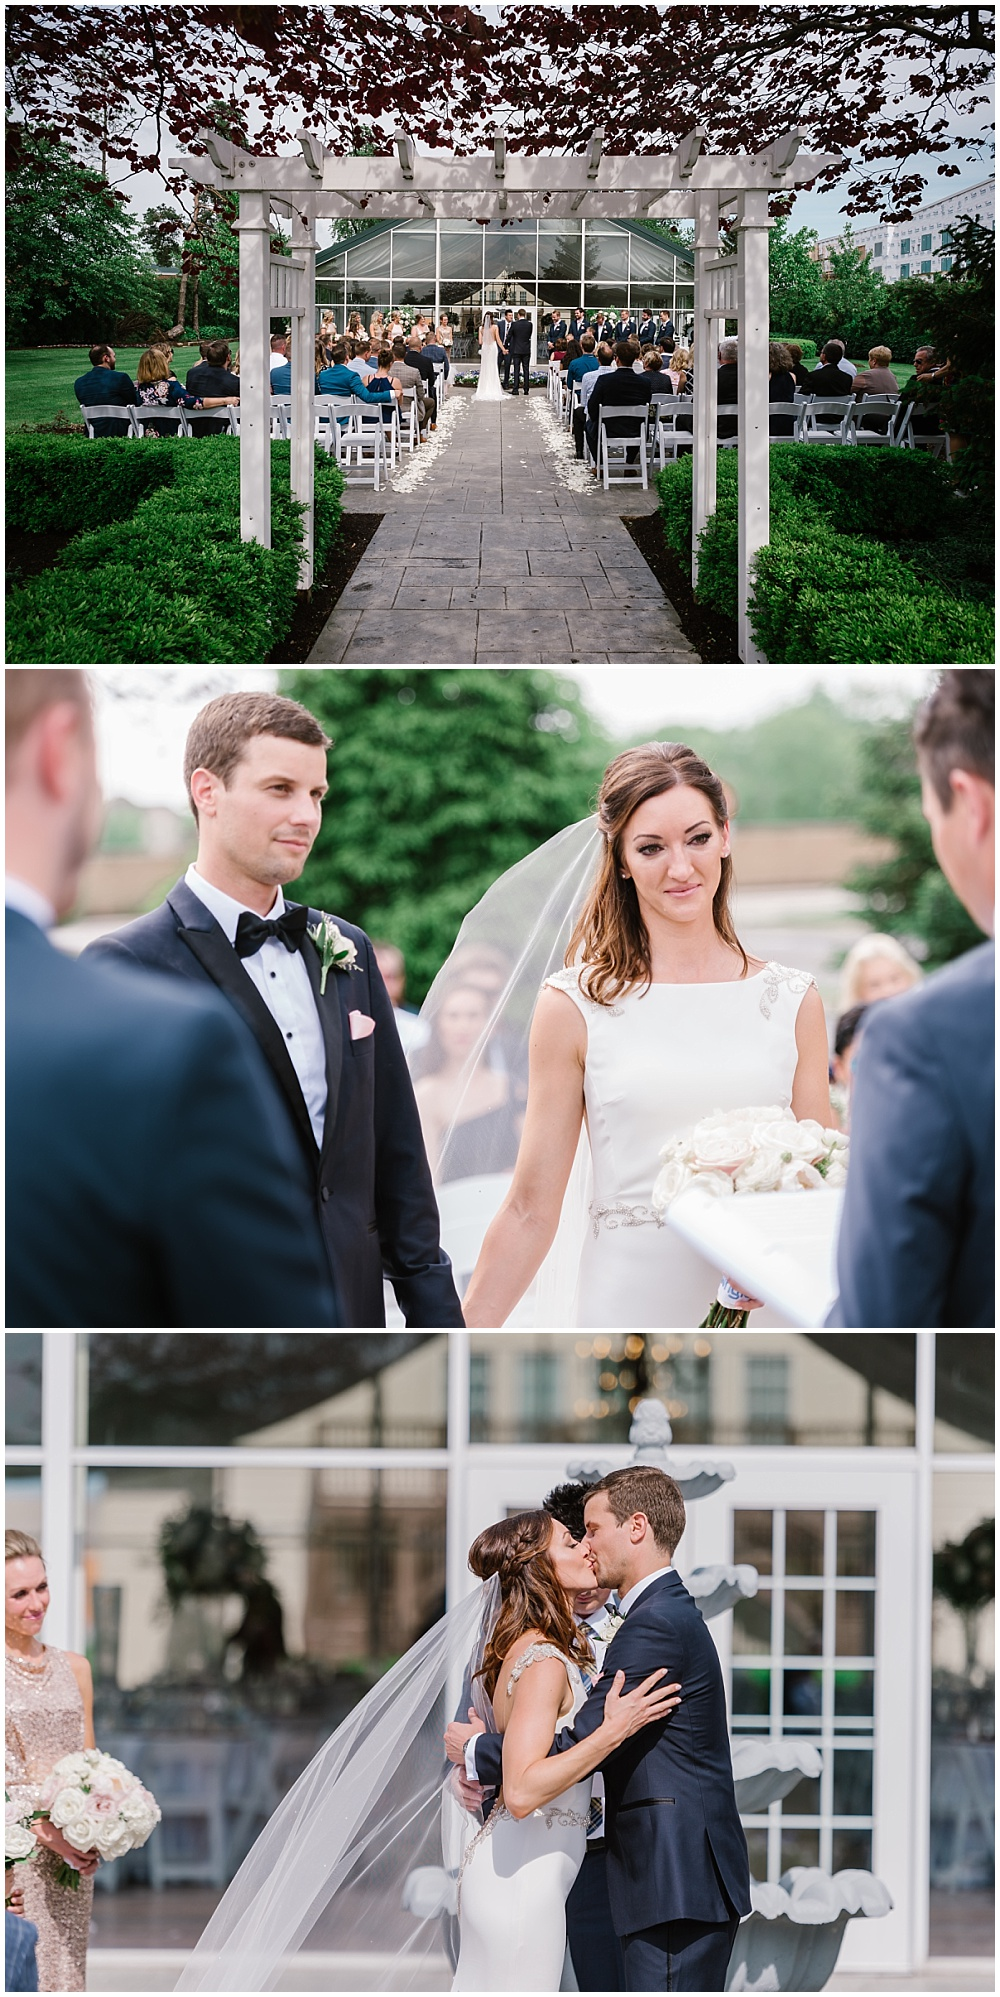 Spring outdoor terrace ceremony. | Spring blush garden-inspired memorial day weekend wedding at the beautiful Ritz Charles Garden Pavilion with Stacy Able Photography and Jessica Dum Wedding Coordination